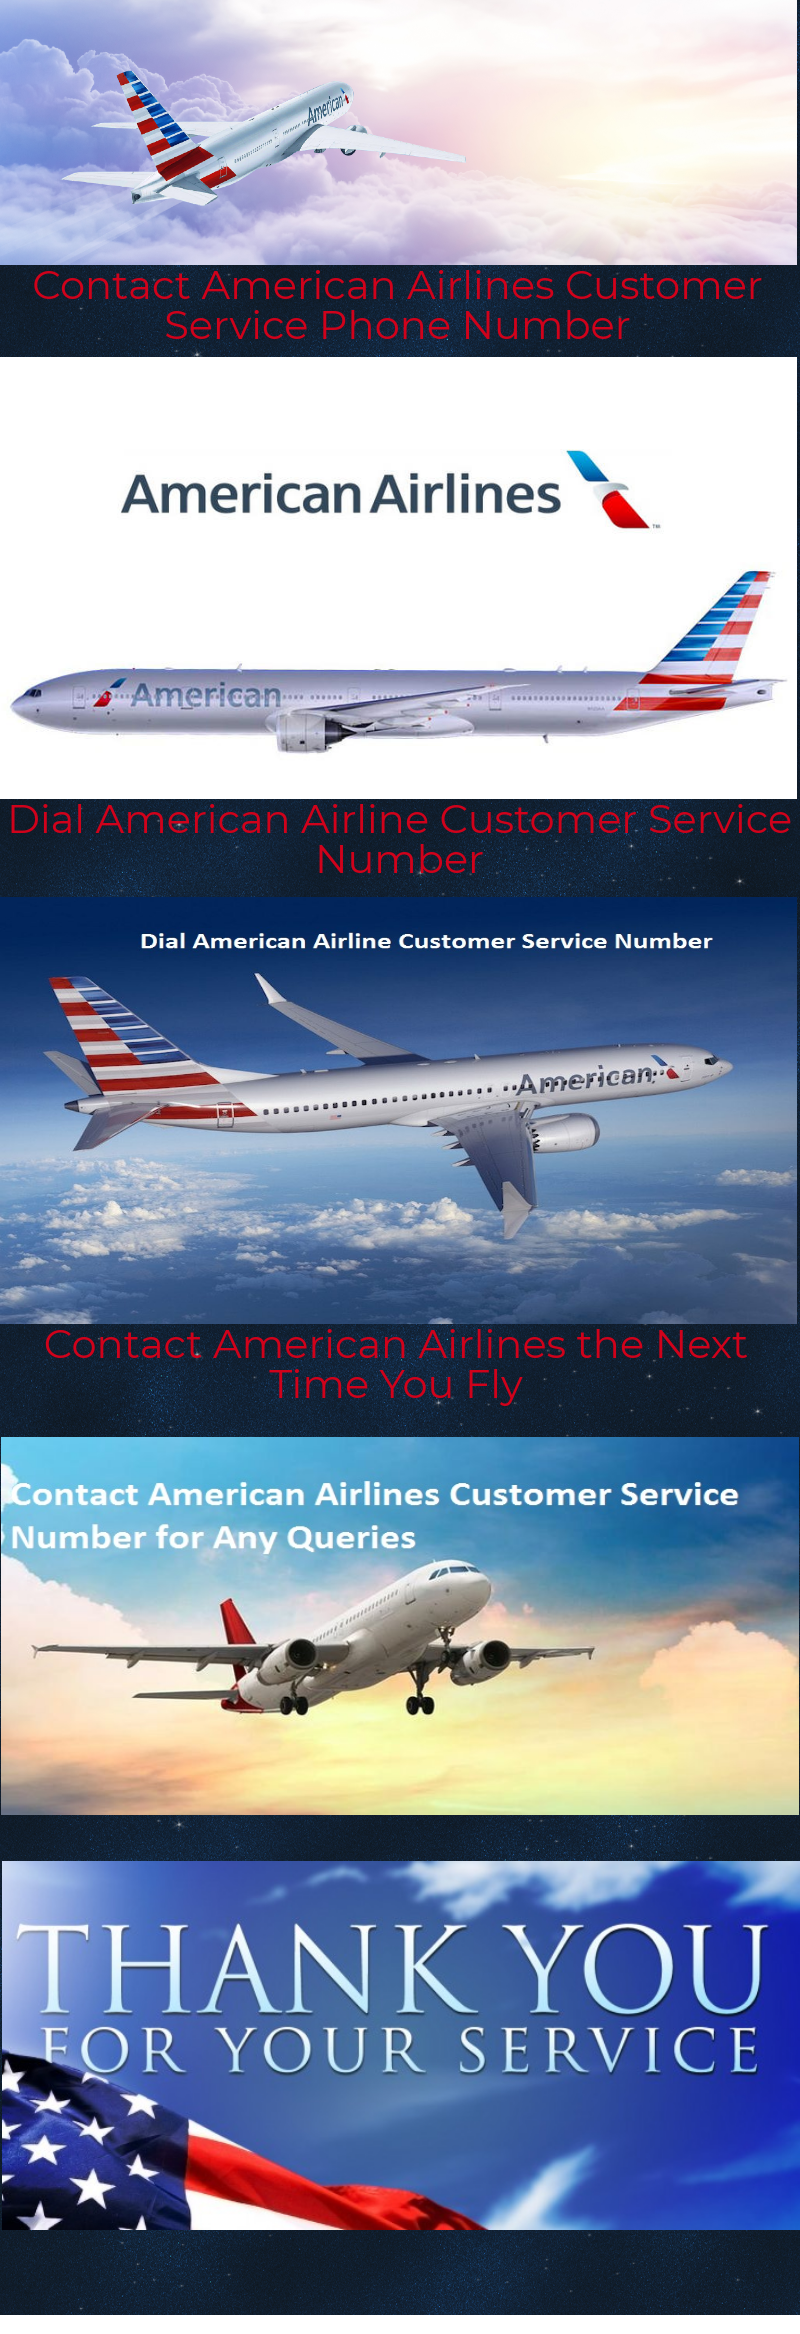 American Airlines has a major Name in Airlines